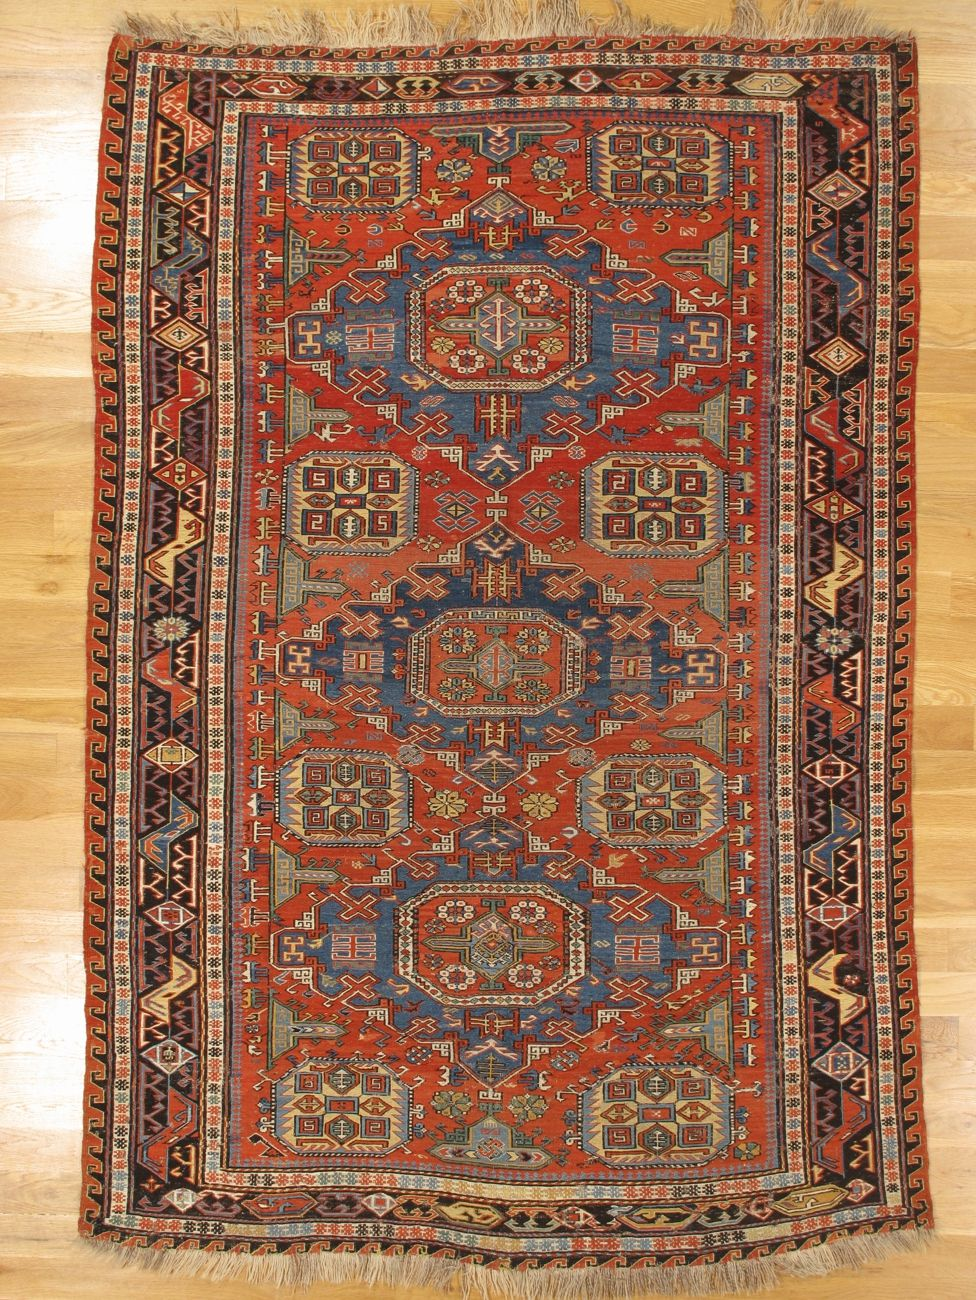 Soumak Flatwoven Rug From Eastern Caucasus West Coast Of The Caspian Sea Age Circa 1885 Size 7 6 X5 0 229x152 Cm Rugs Flat Woven Rug Persian Rug